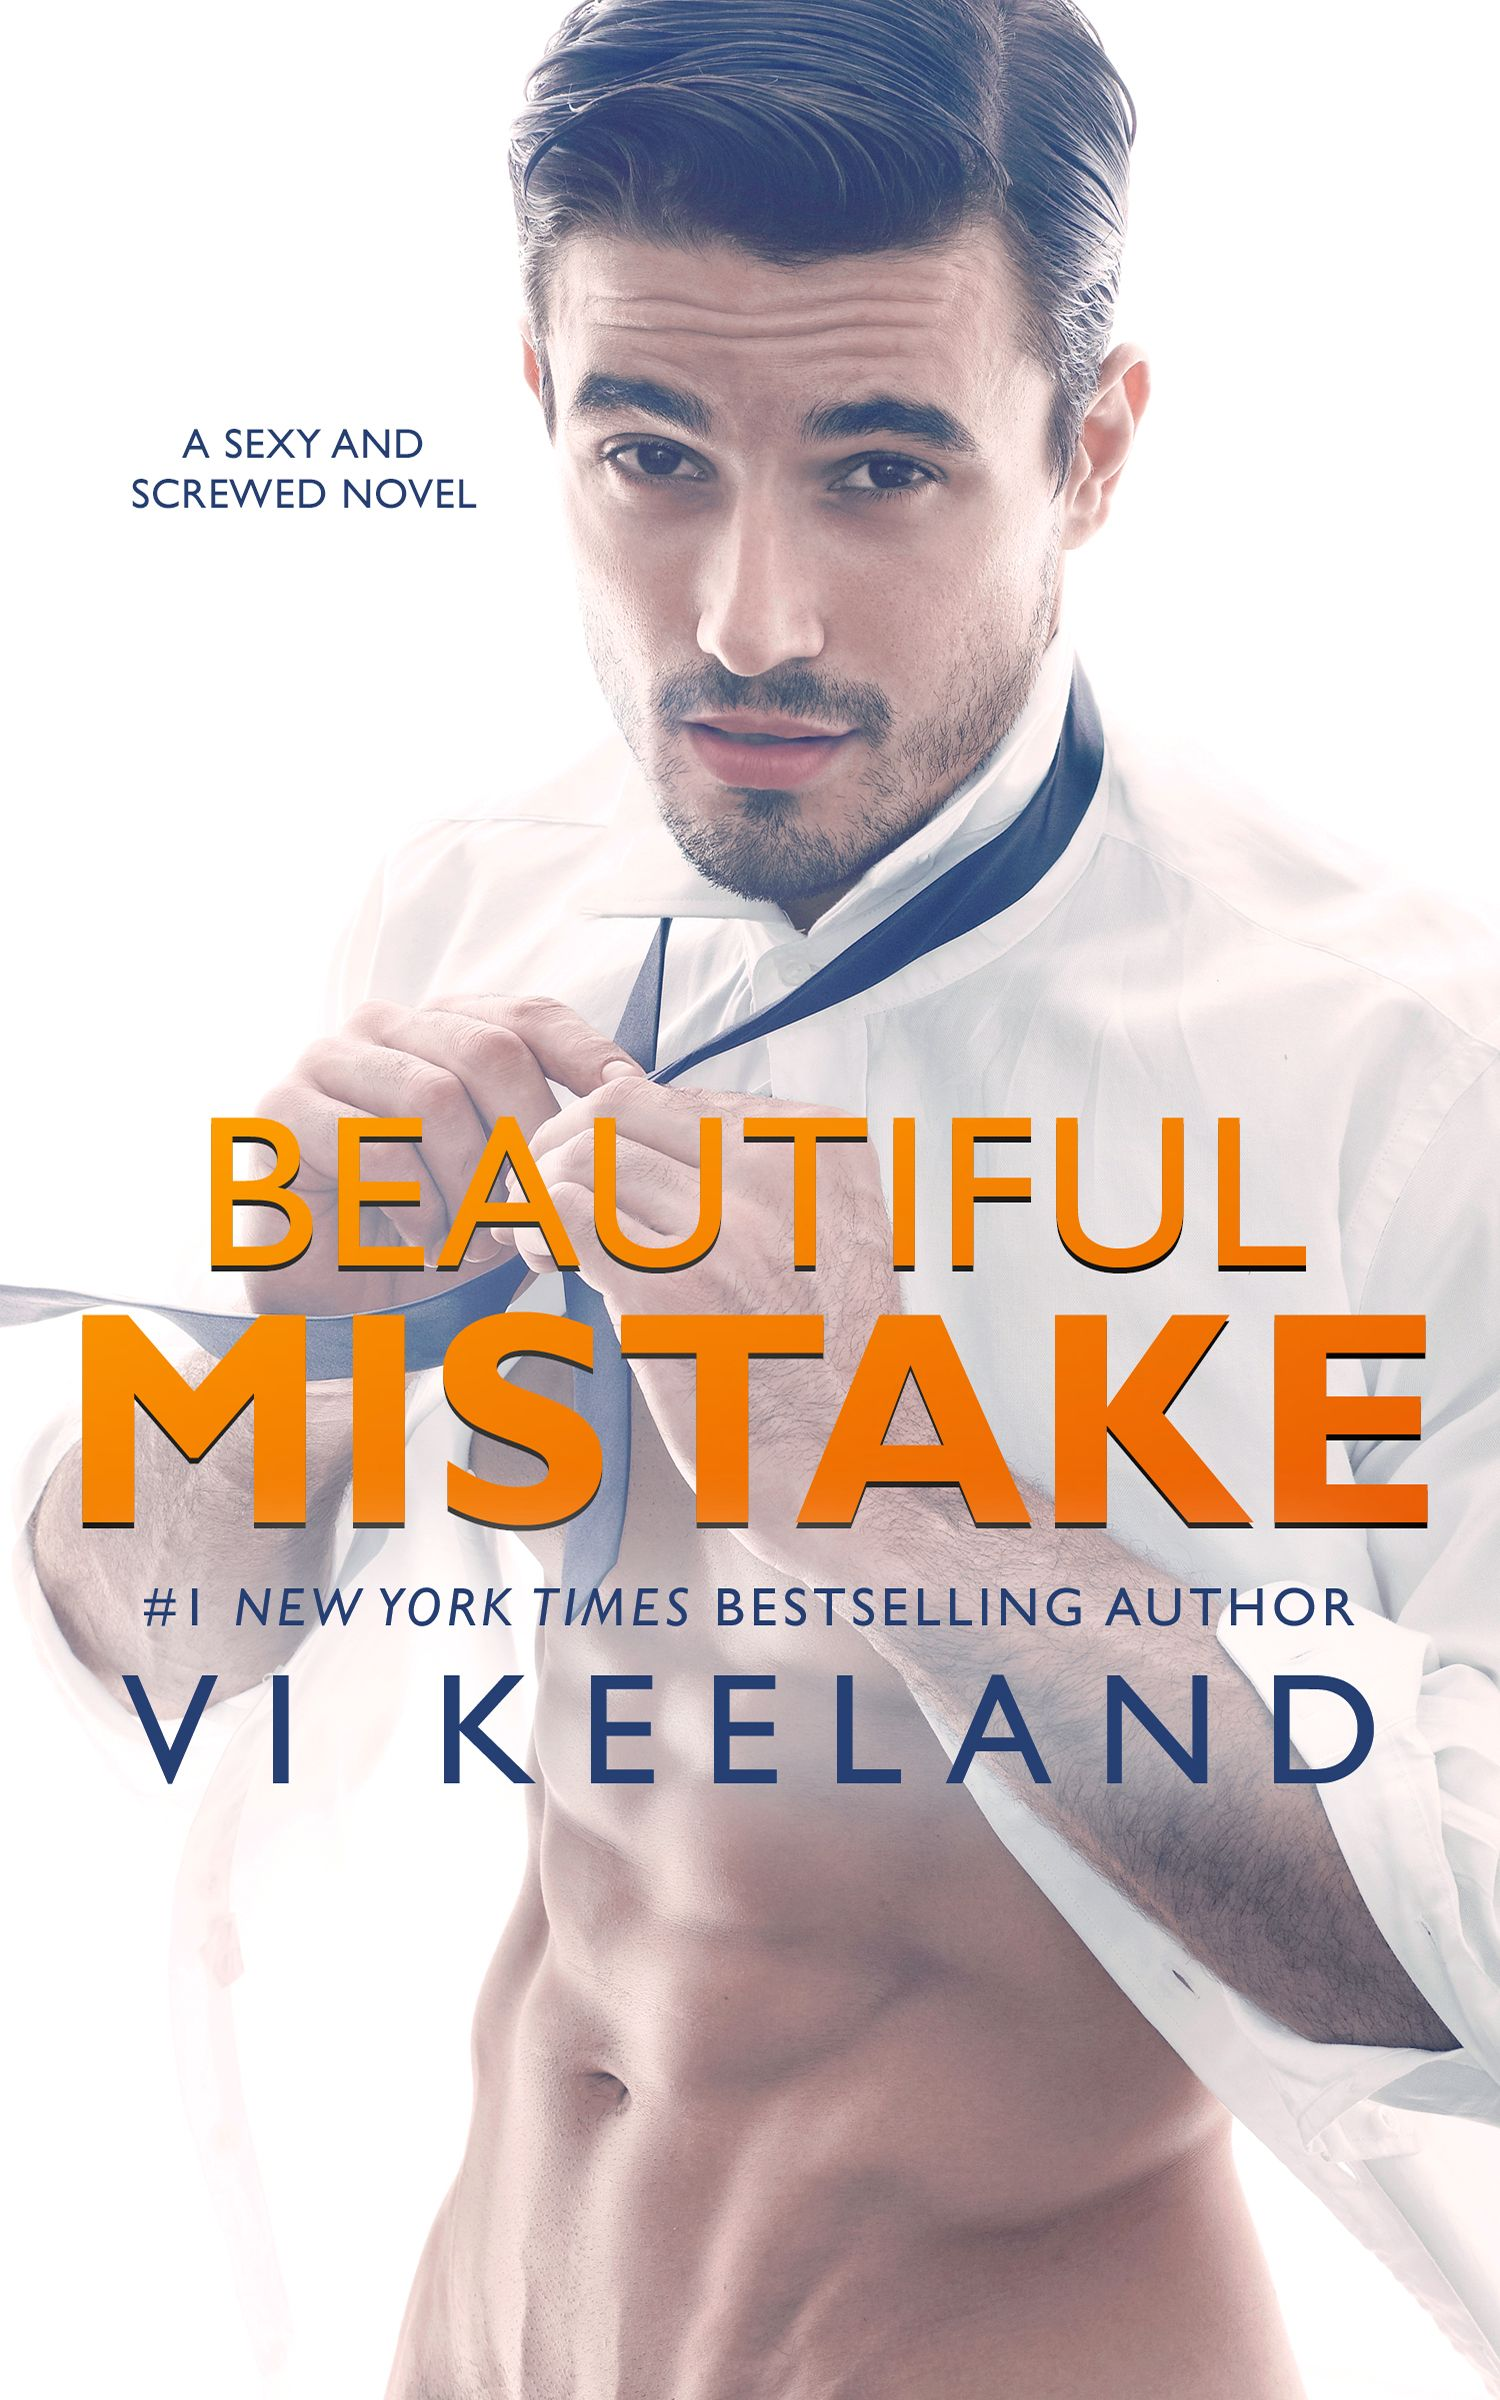 Vi Keeland Libros Sneak Peak Beautiful Mistake By Vi Keeland Fab Tastic Book